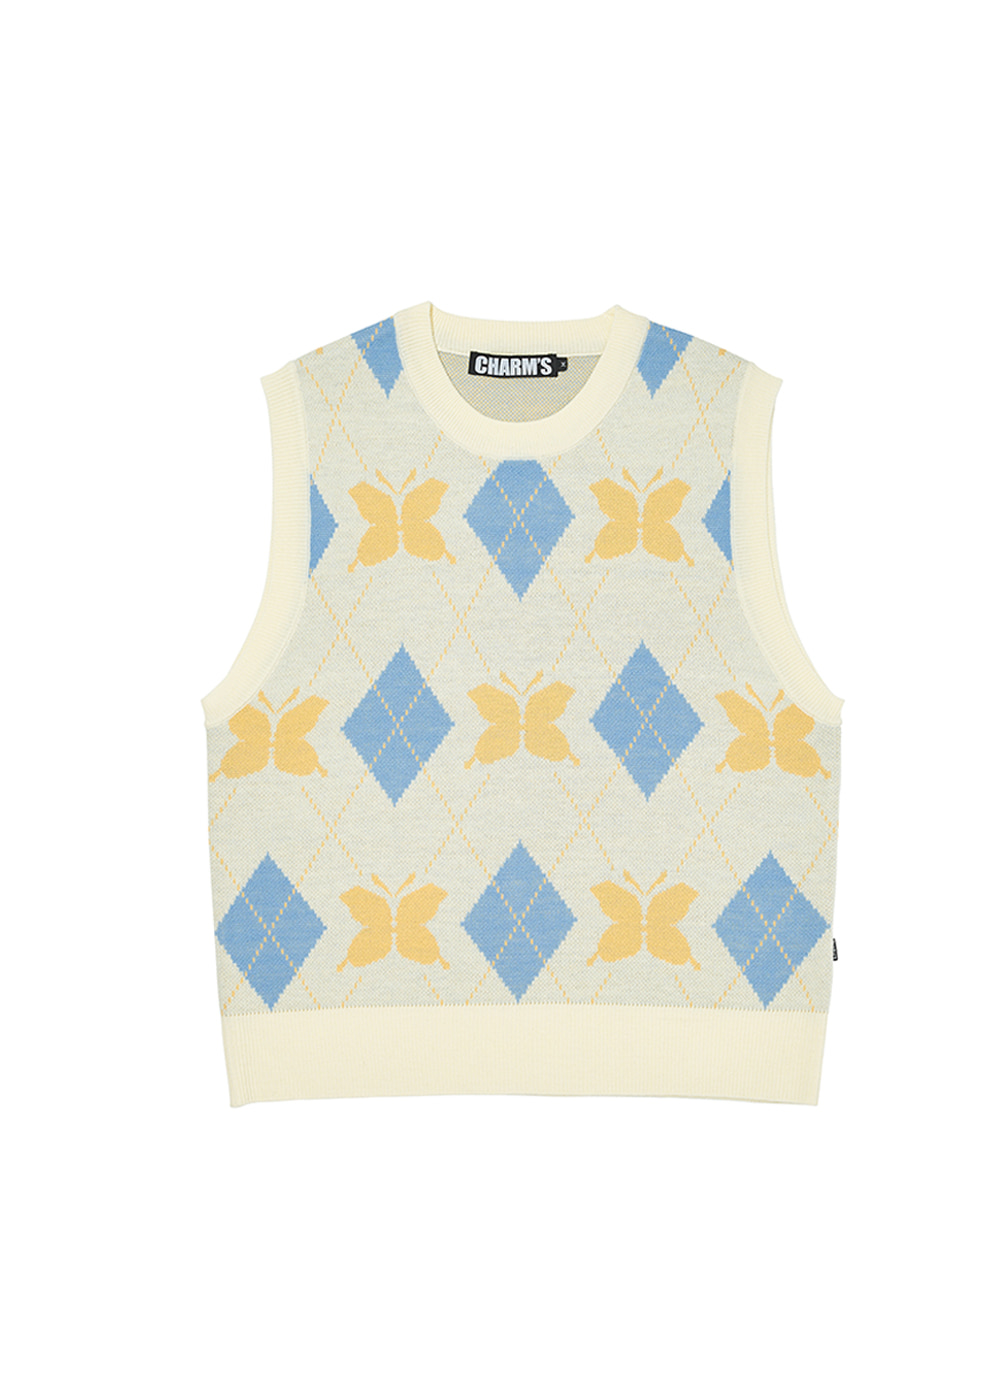 CHARMS BUTTERFLY ARGYLE KNIT VEST BE